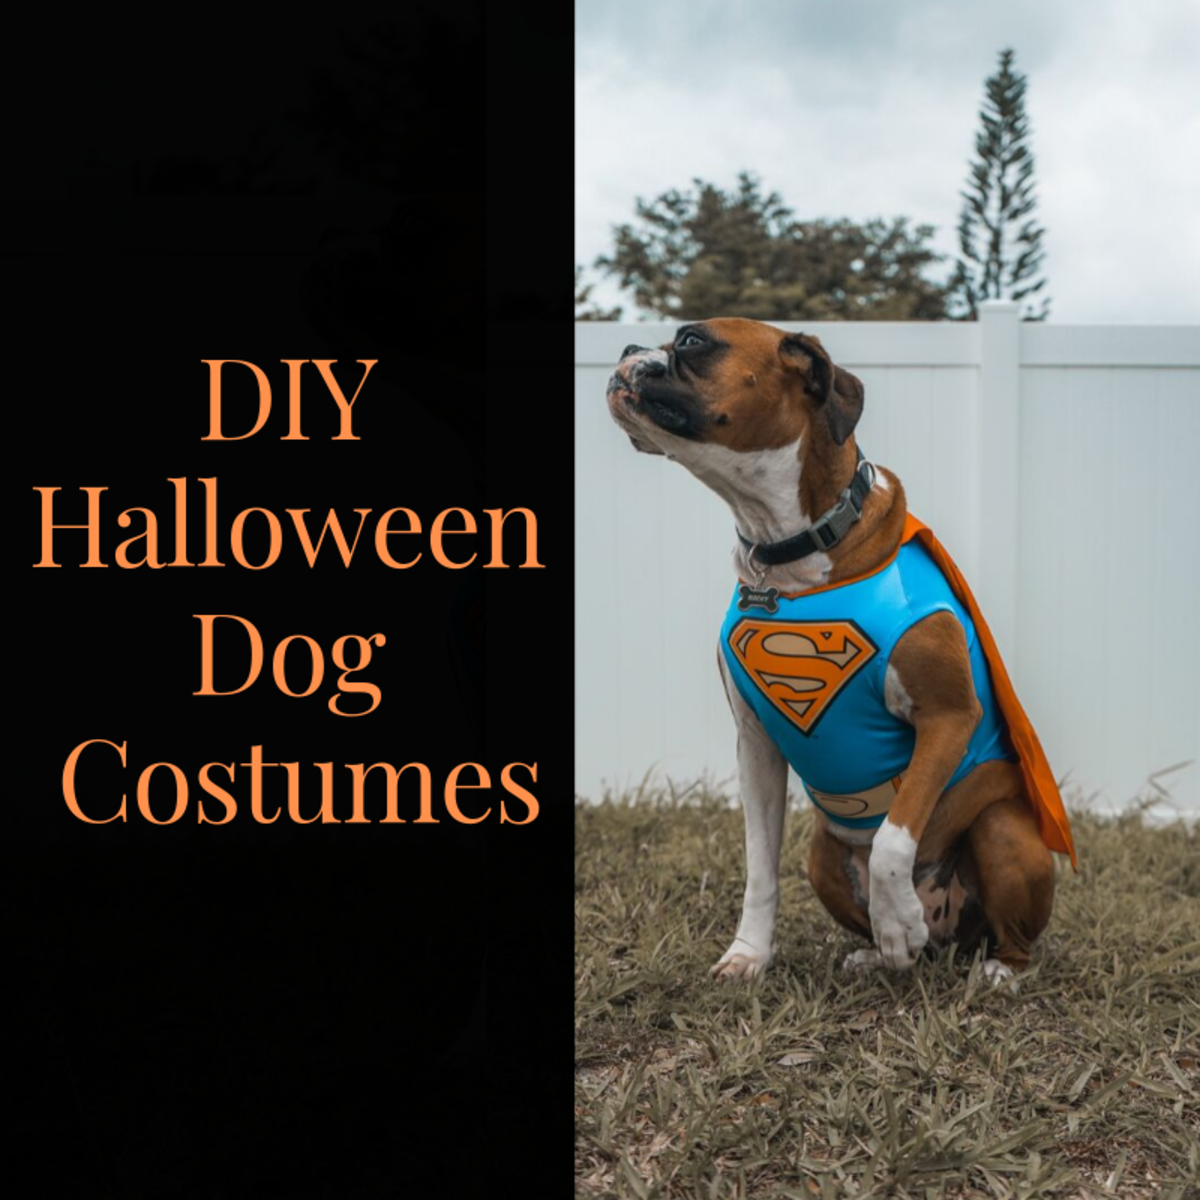 These Halloween dog costumes won't drive them crazy.